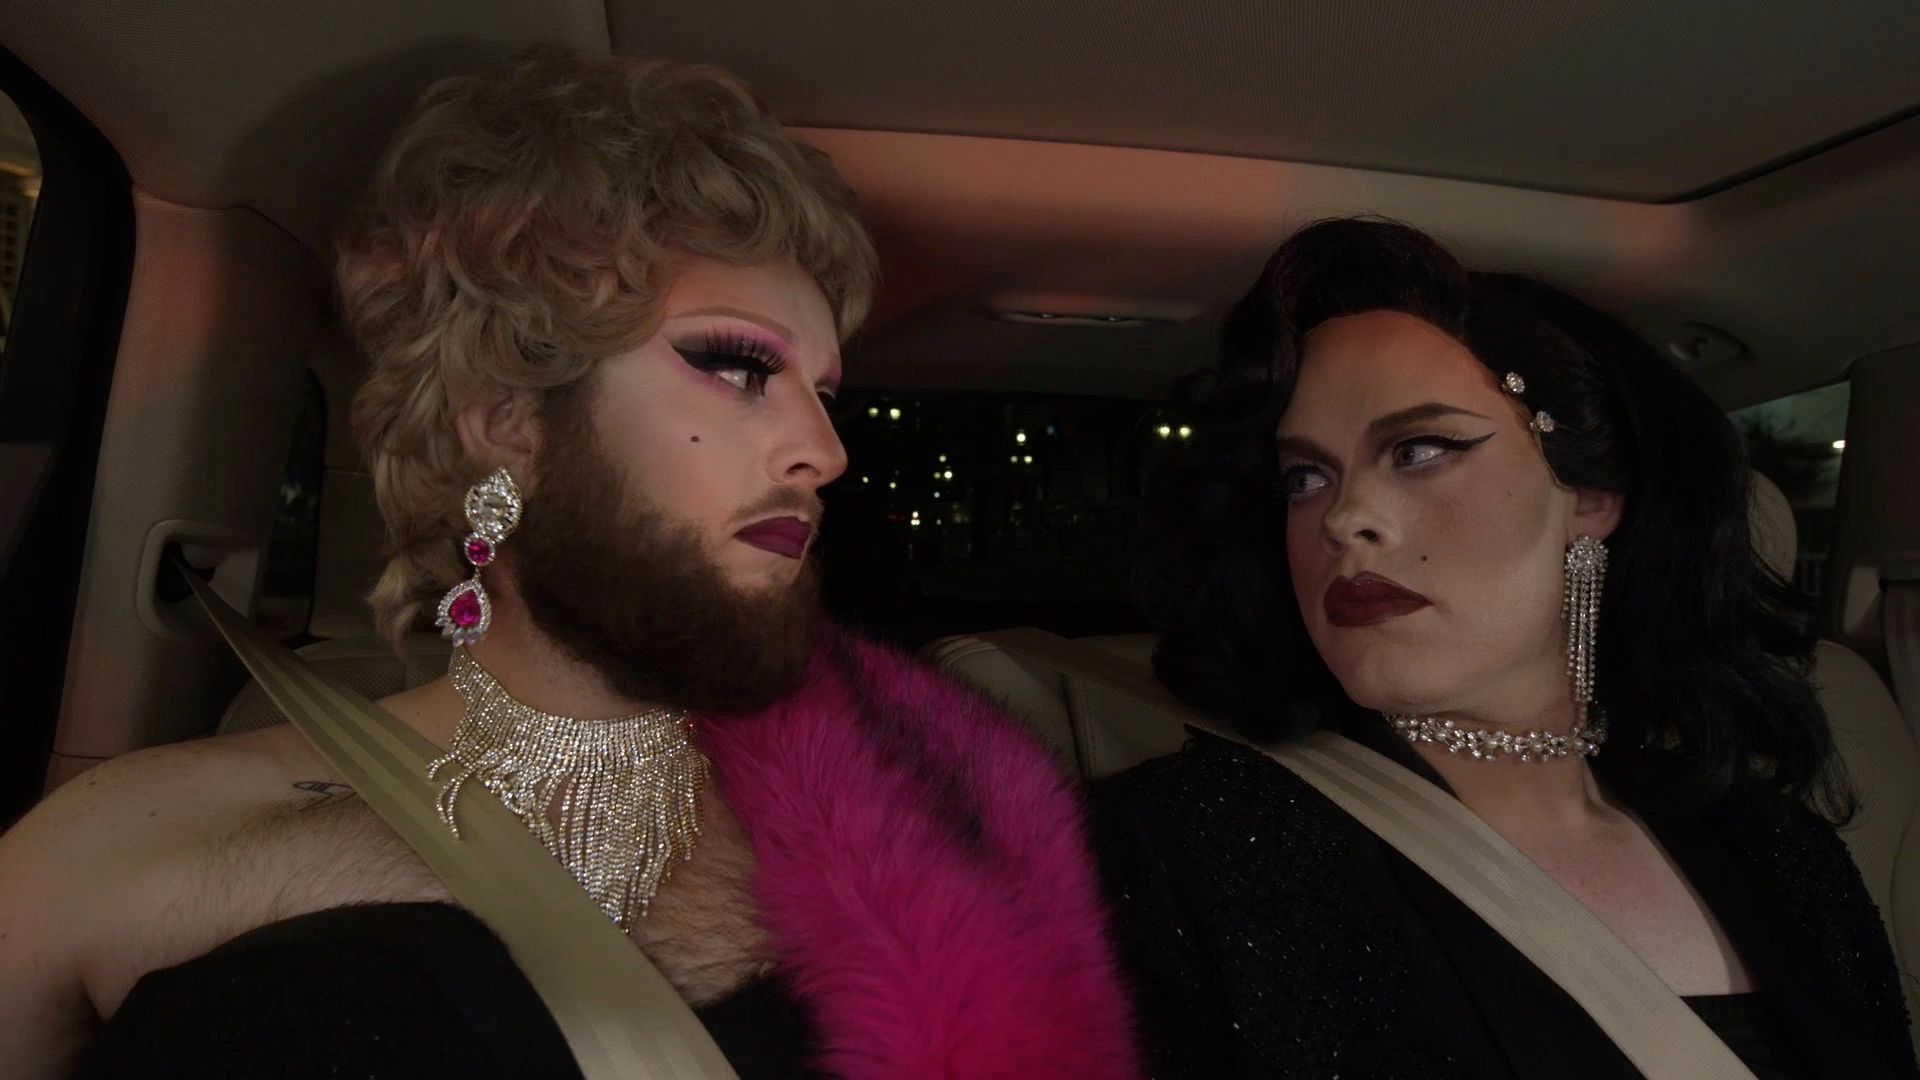 Two drag queens give each other a shocked look